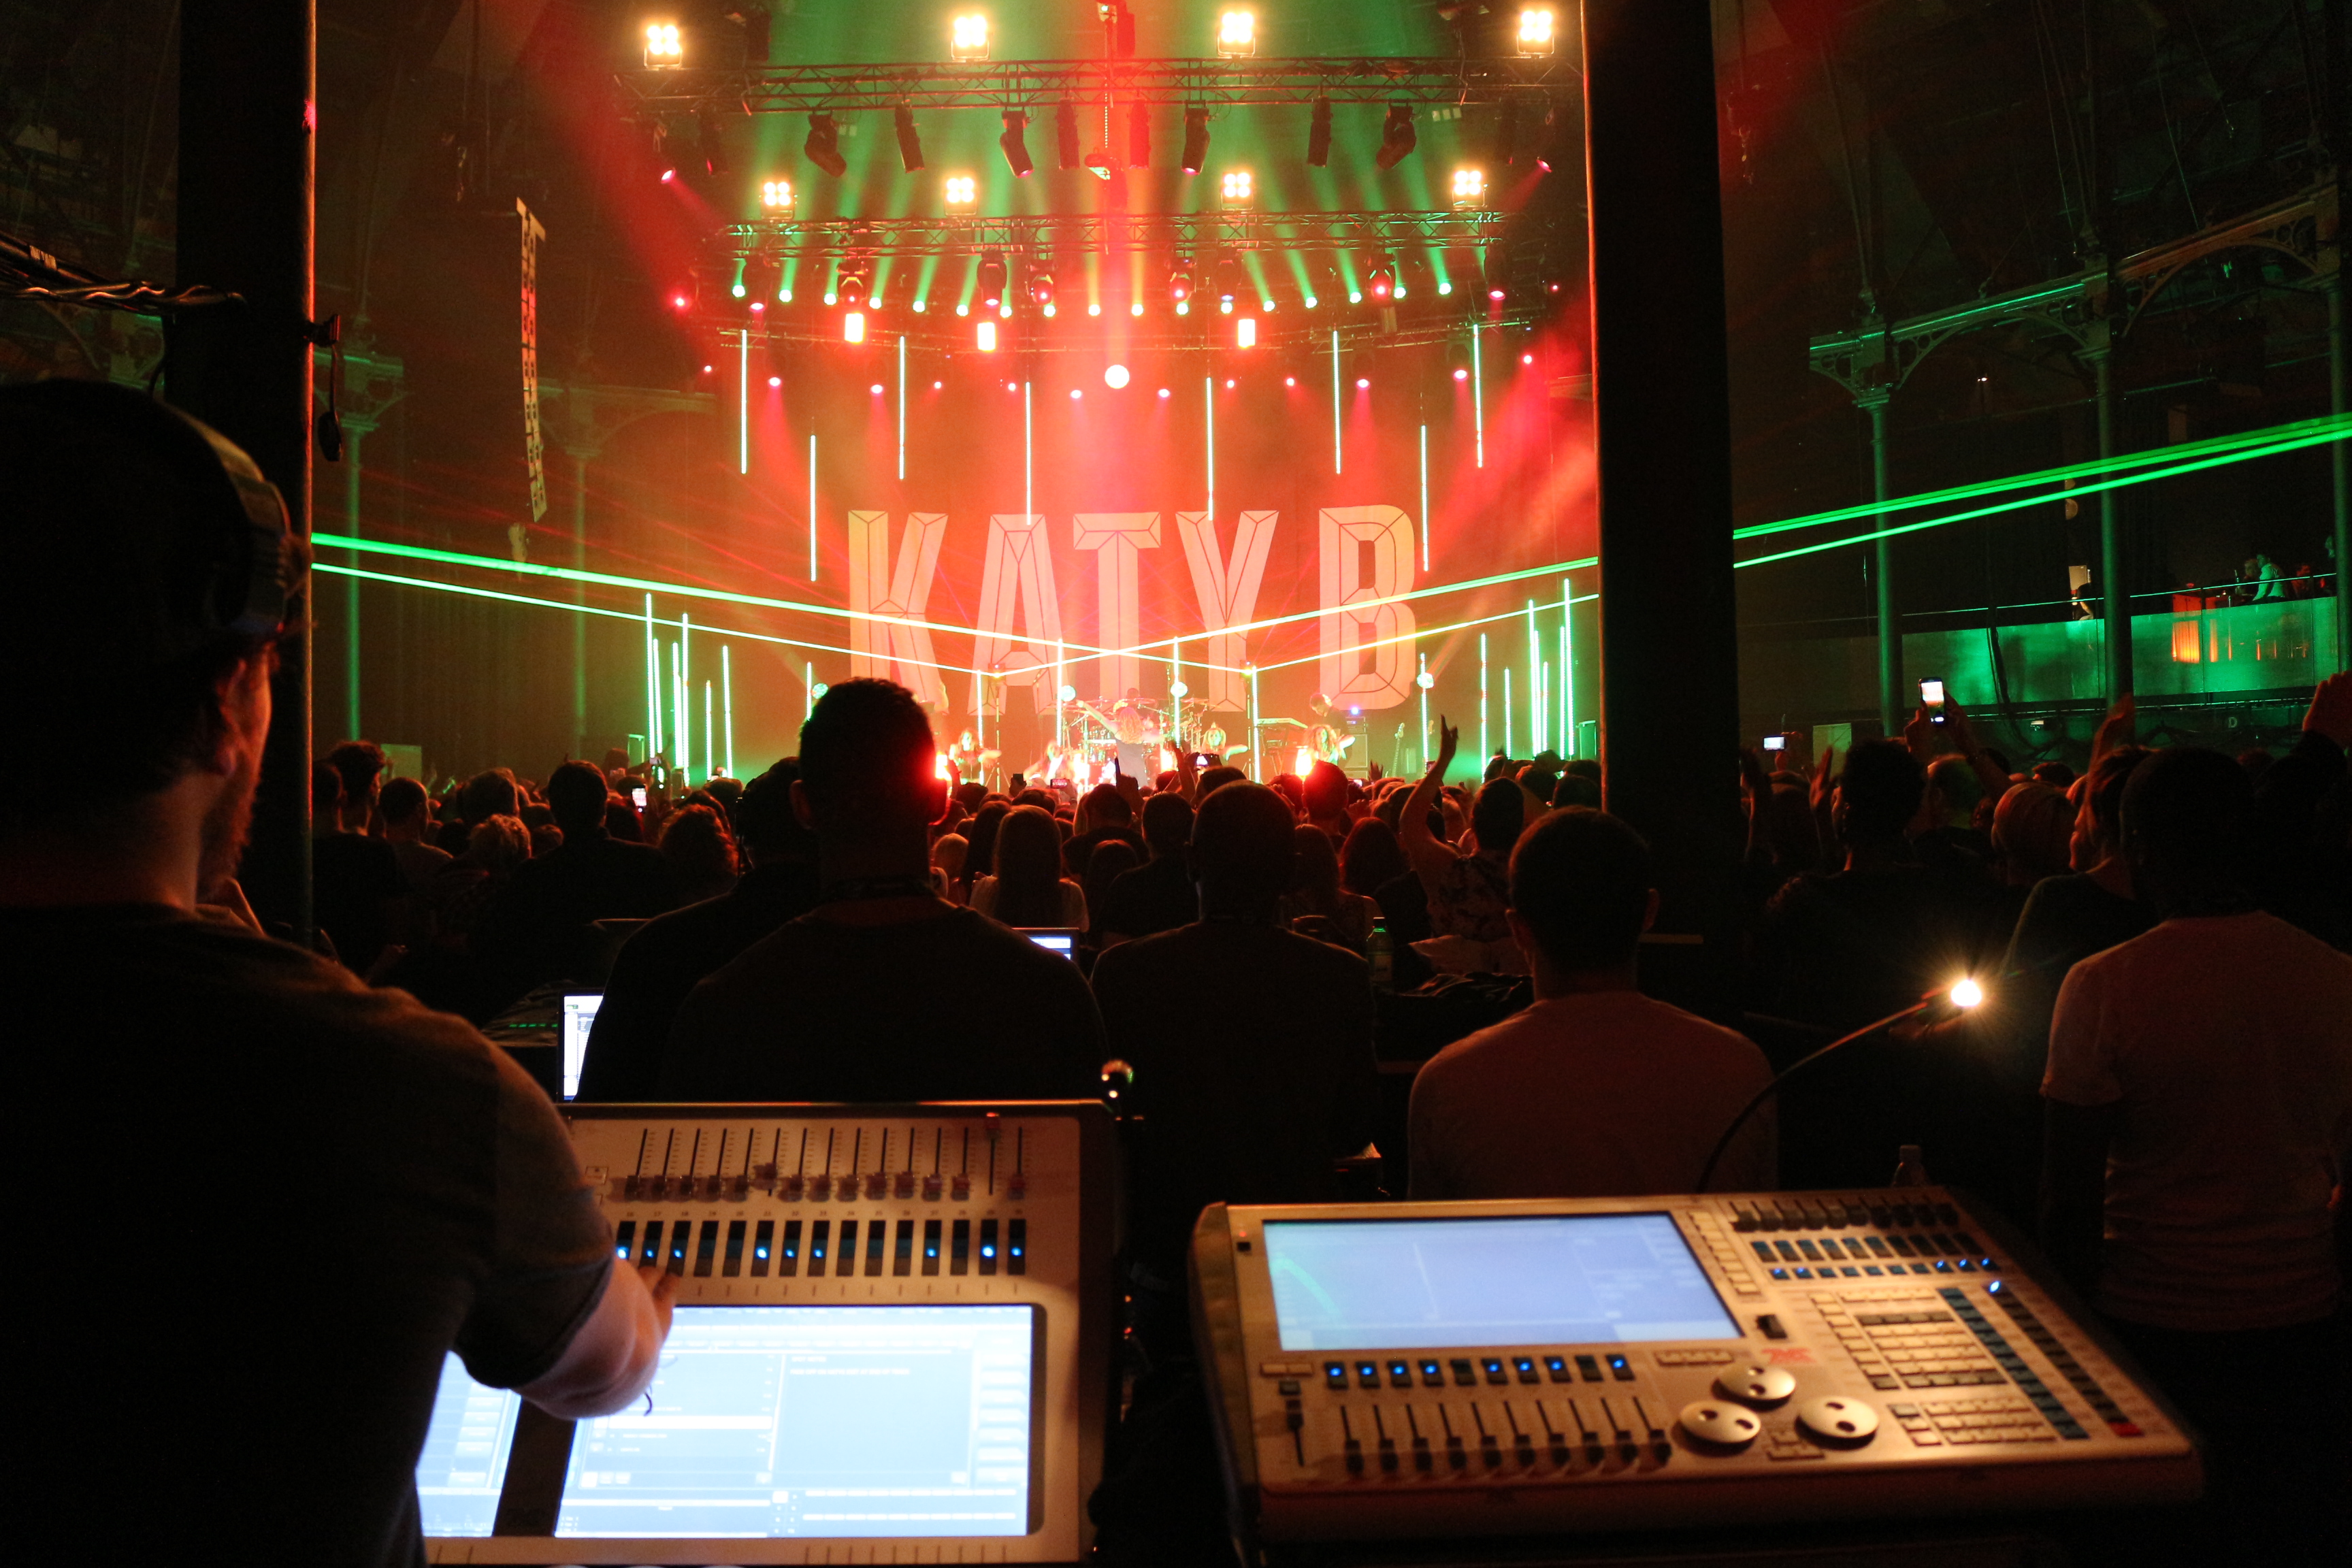 Avolites Sapphire Touch controls nightclub vibe for Katy B